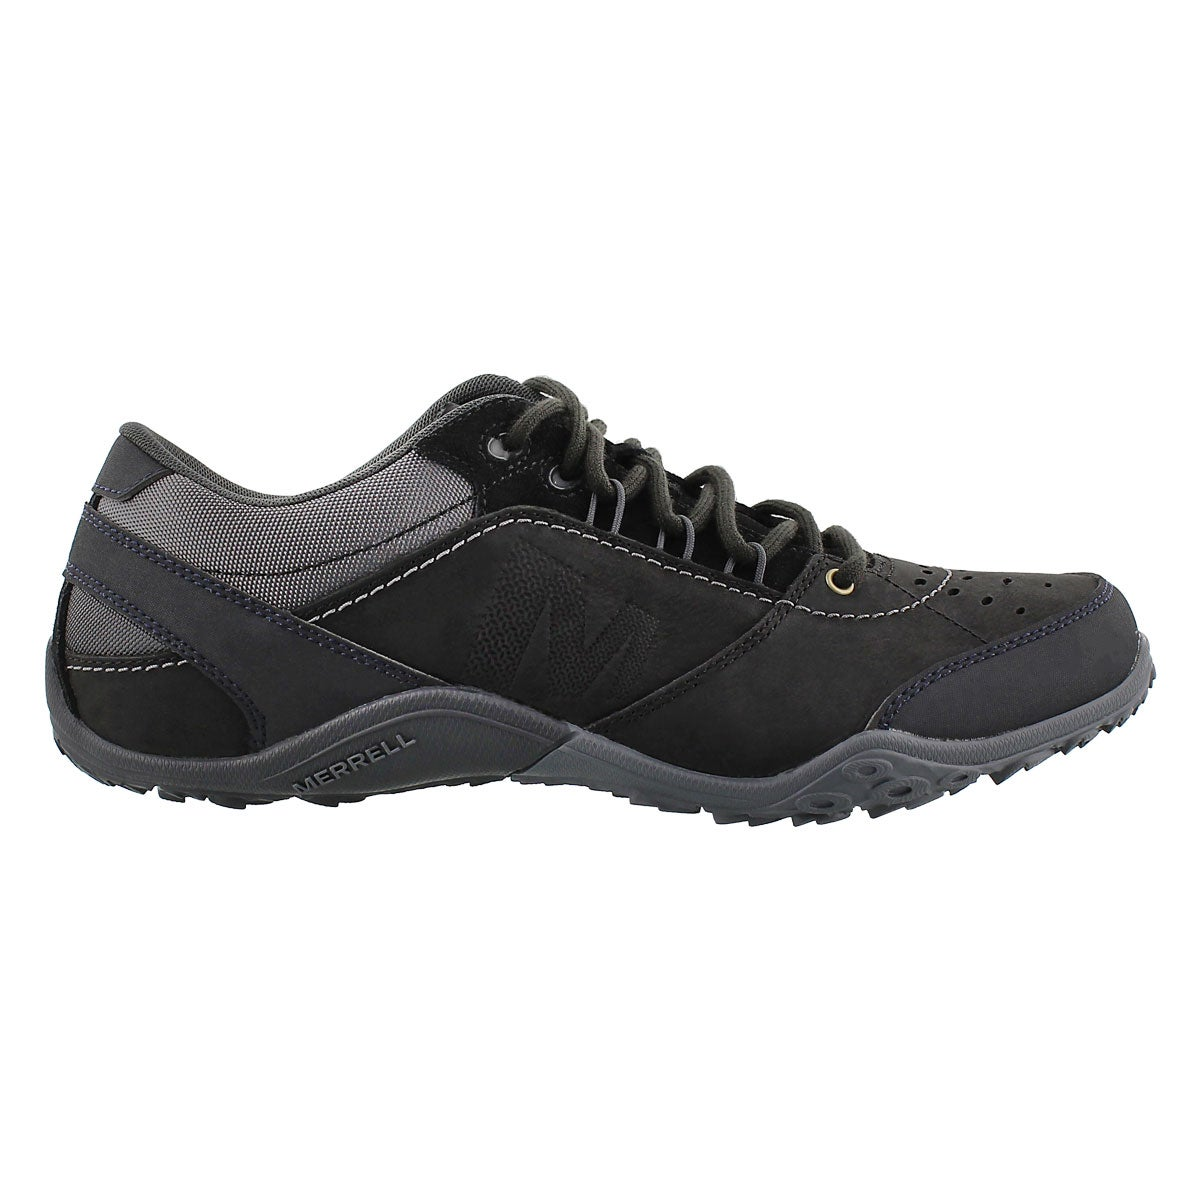 Mns Wraith Fire black hiking shoe